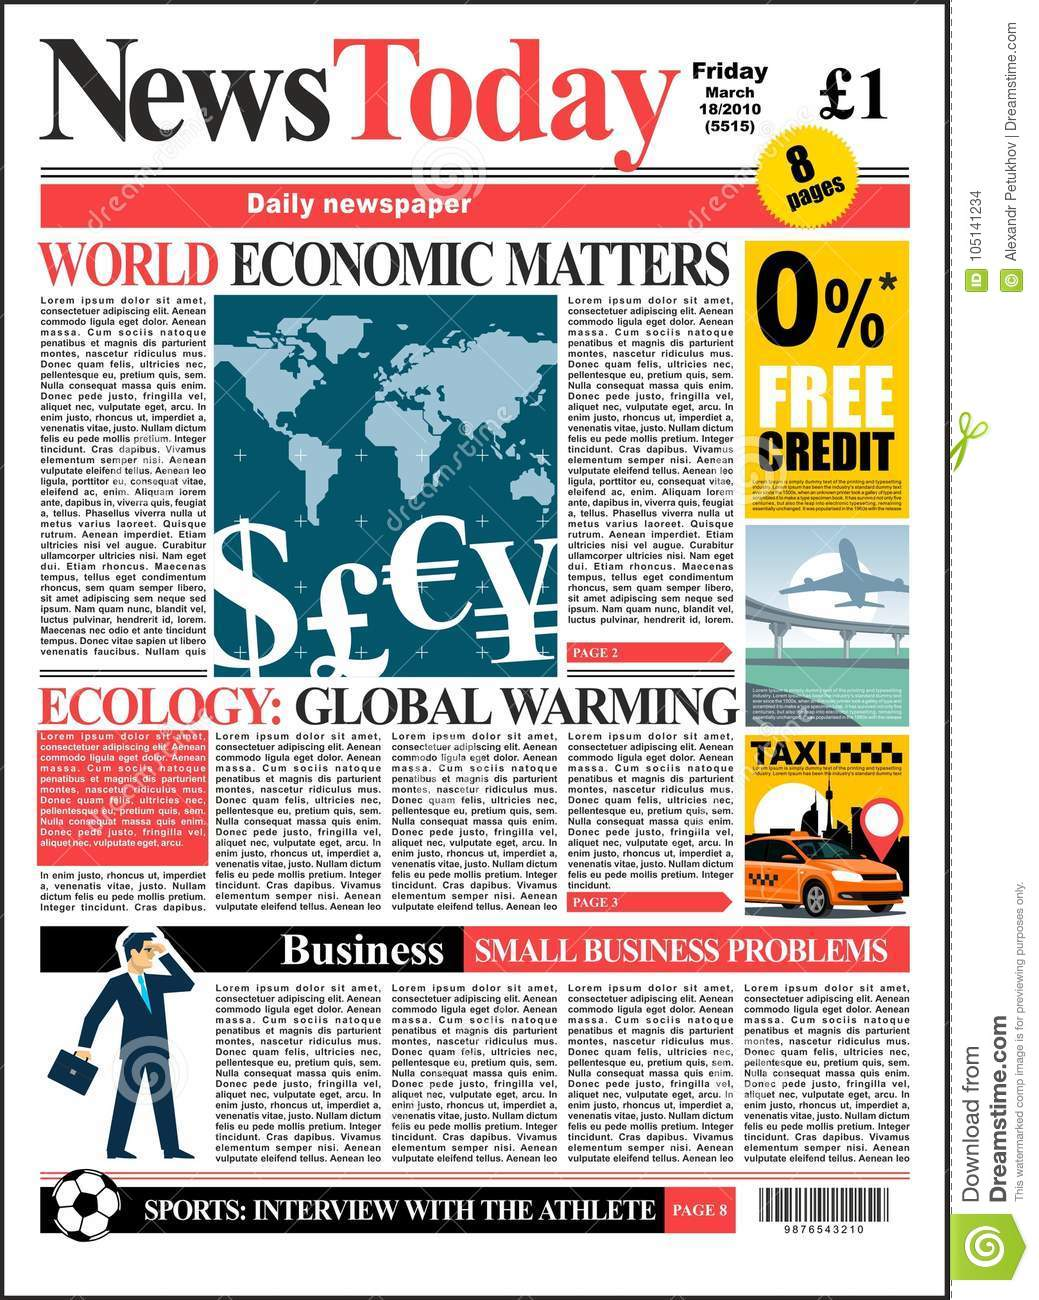 Newspaper Cover Realistic Colored Page With Illustrations Template